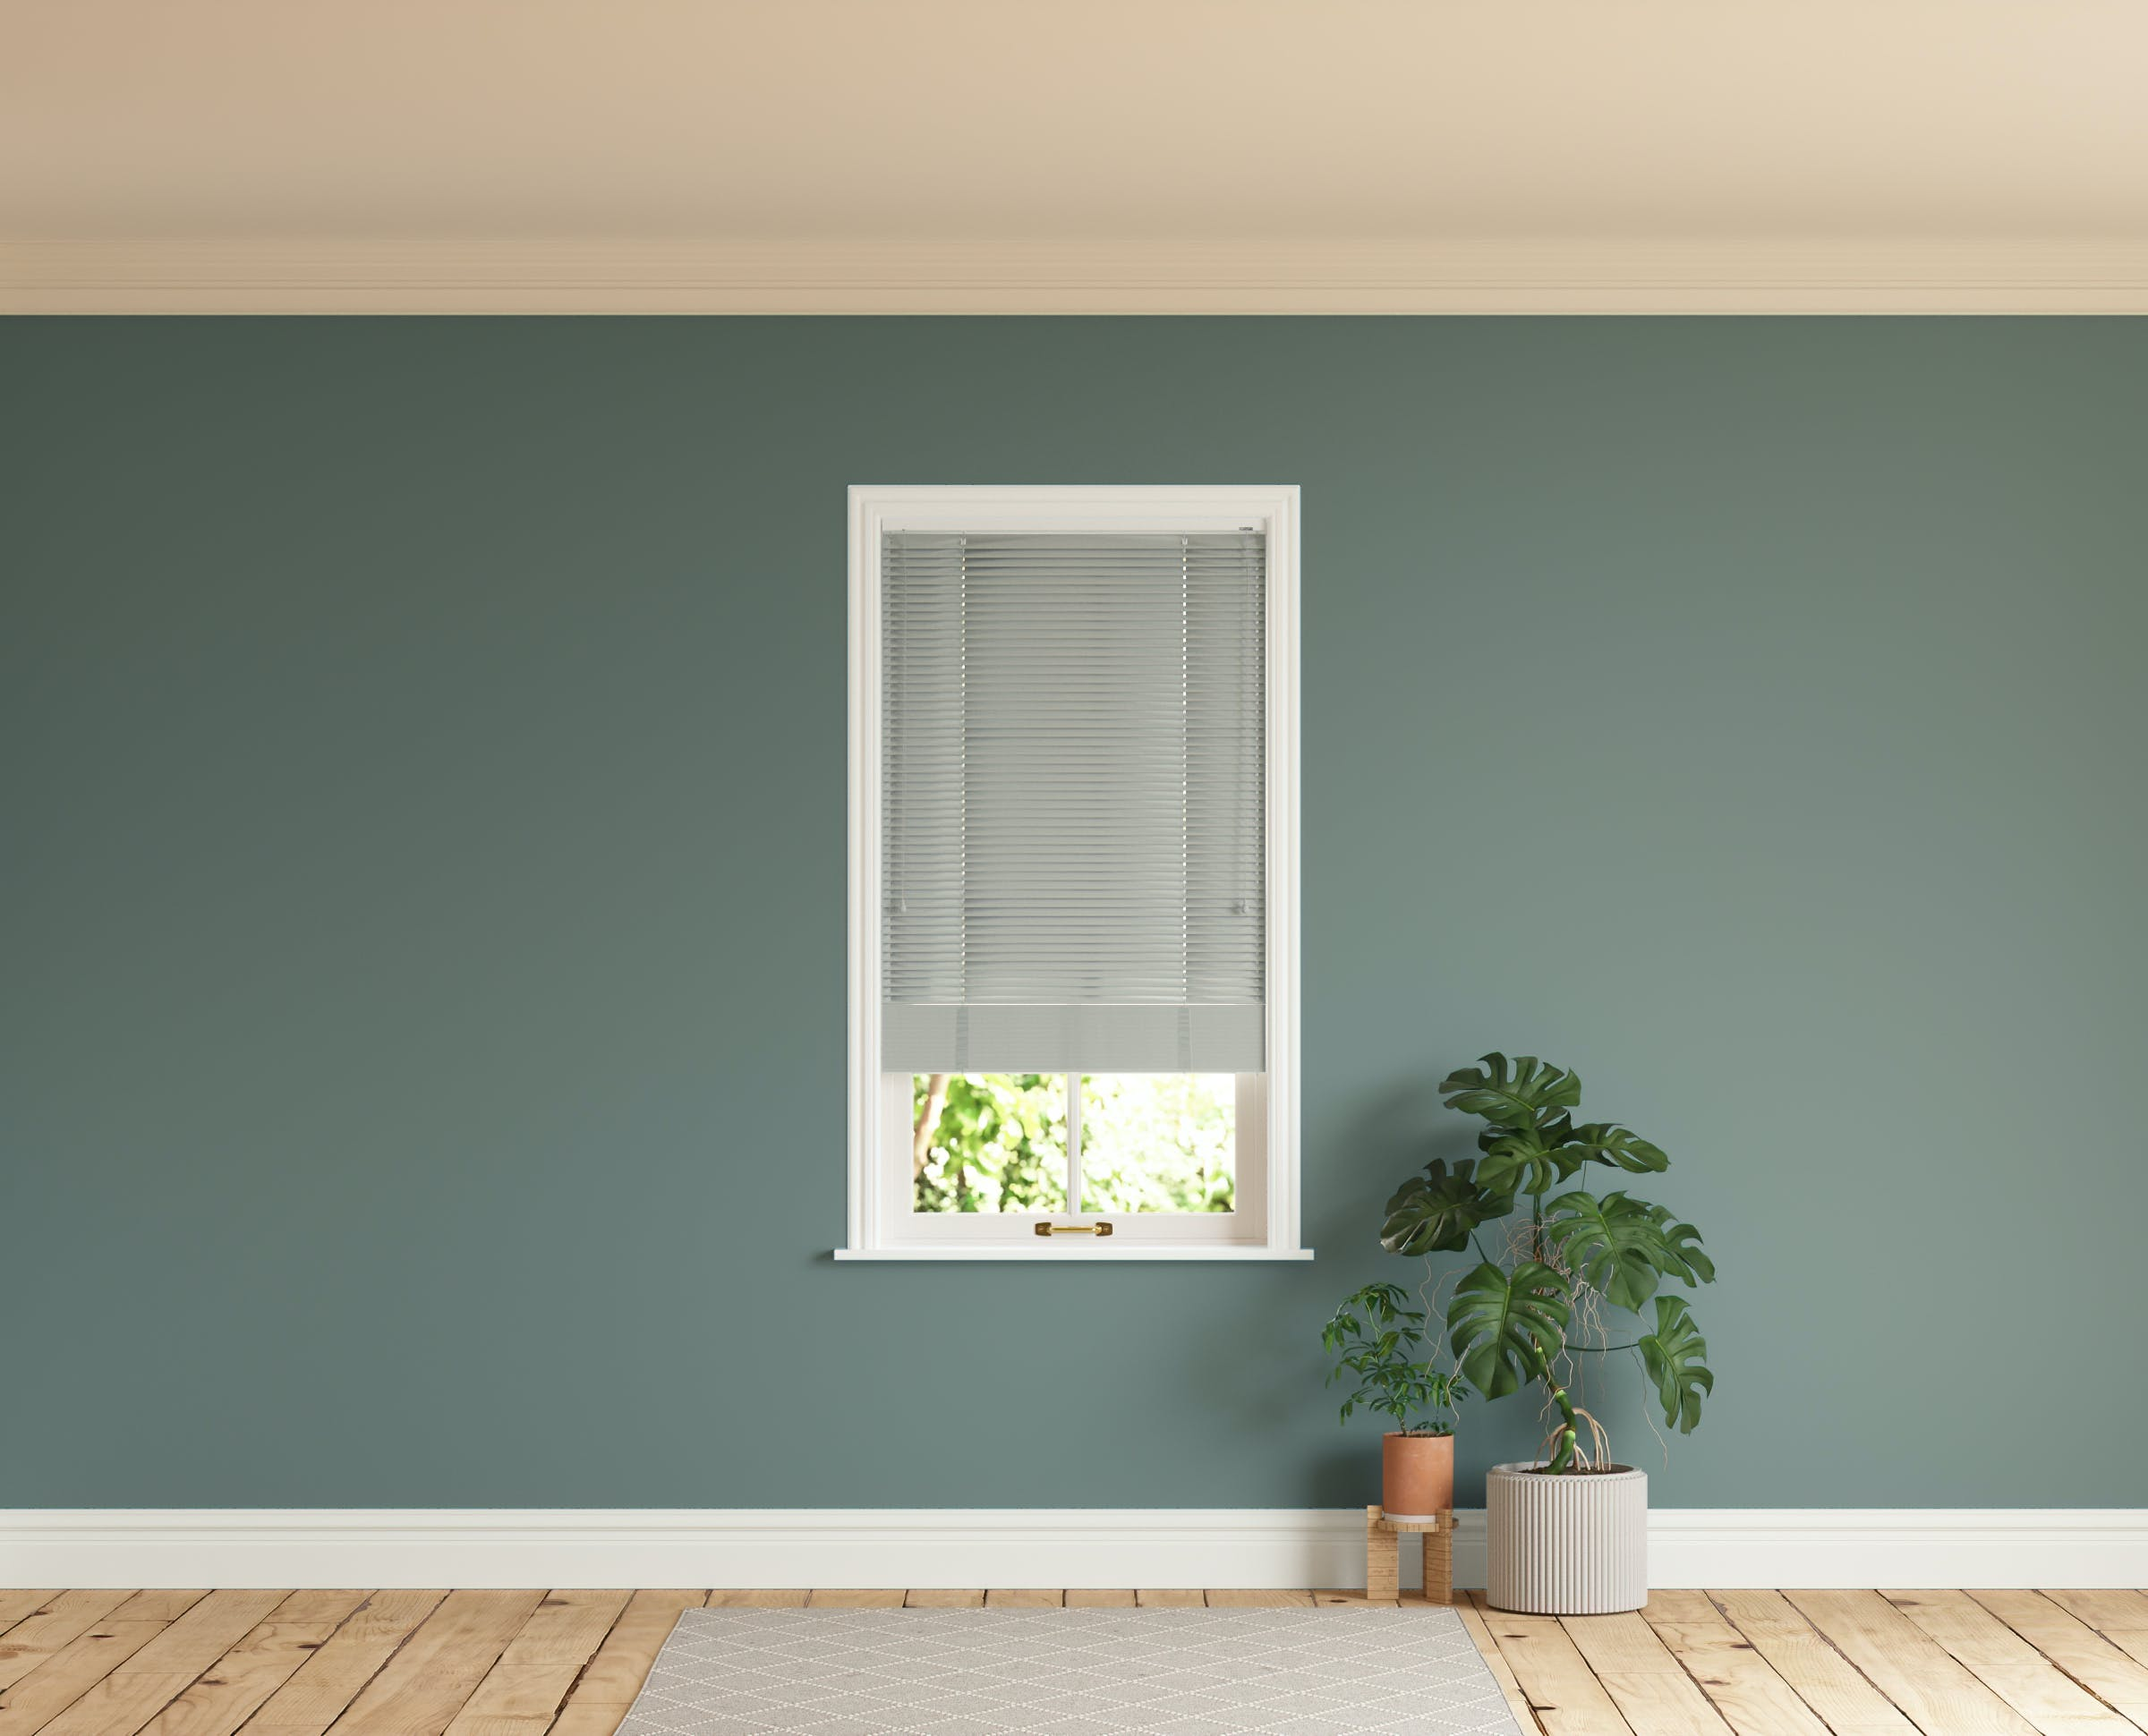 Room with walls painted in Lick Green 03 and Grey 04 Venetian fine grain blinds